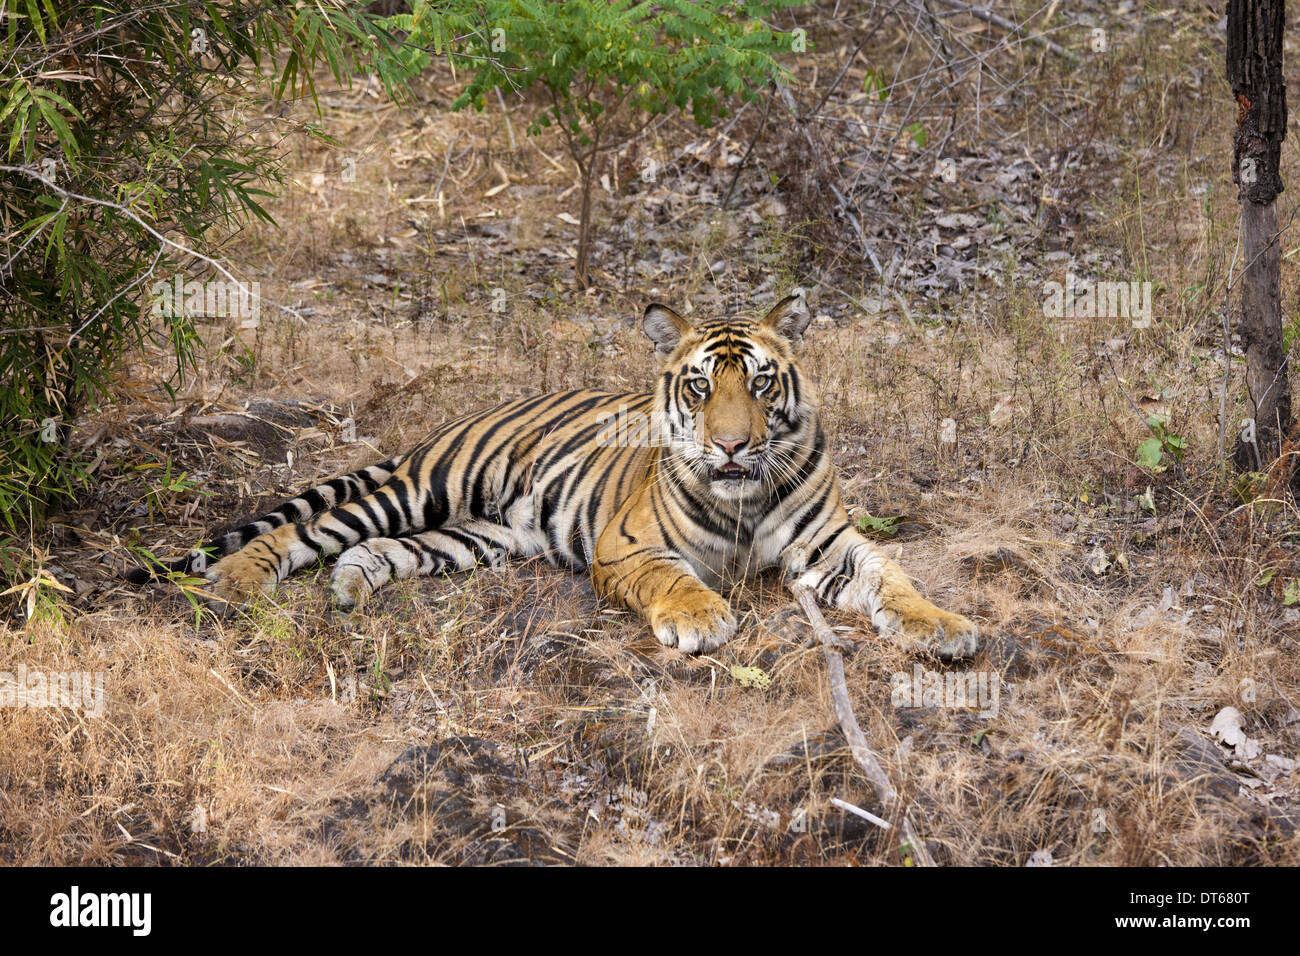 Ein Tiger in Bandhavgarh National Park, Indien Stockbild